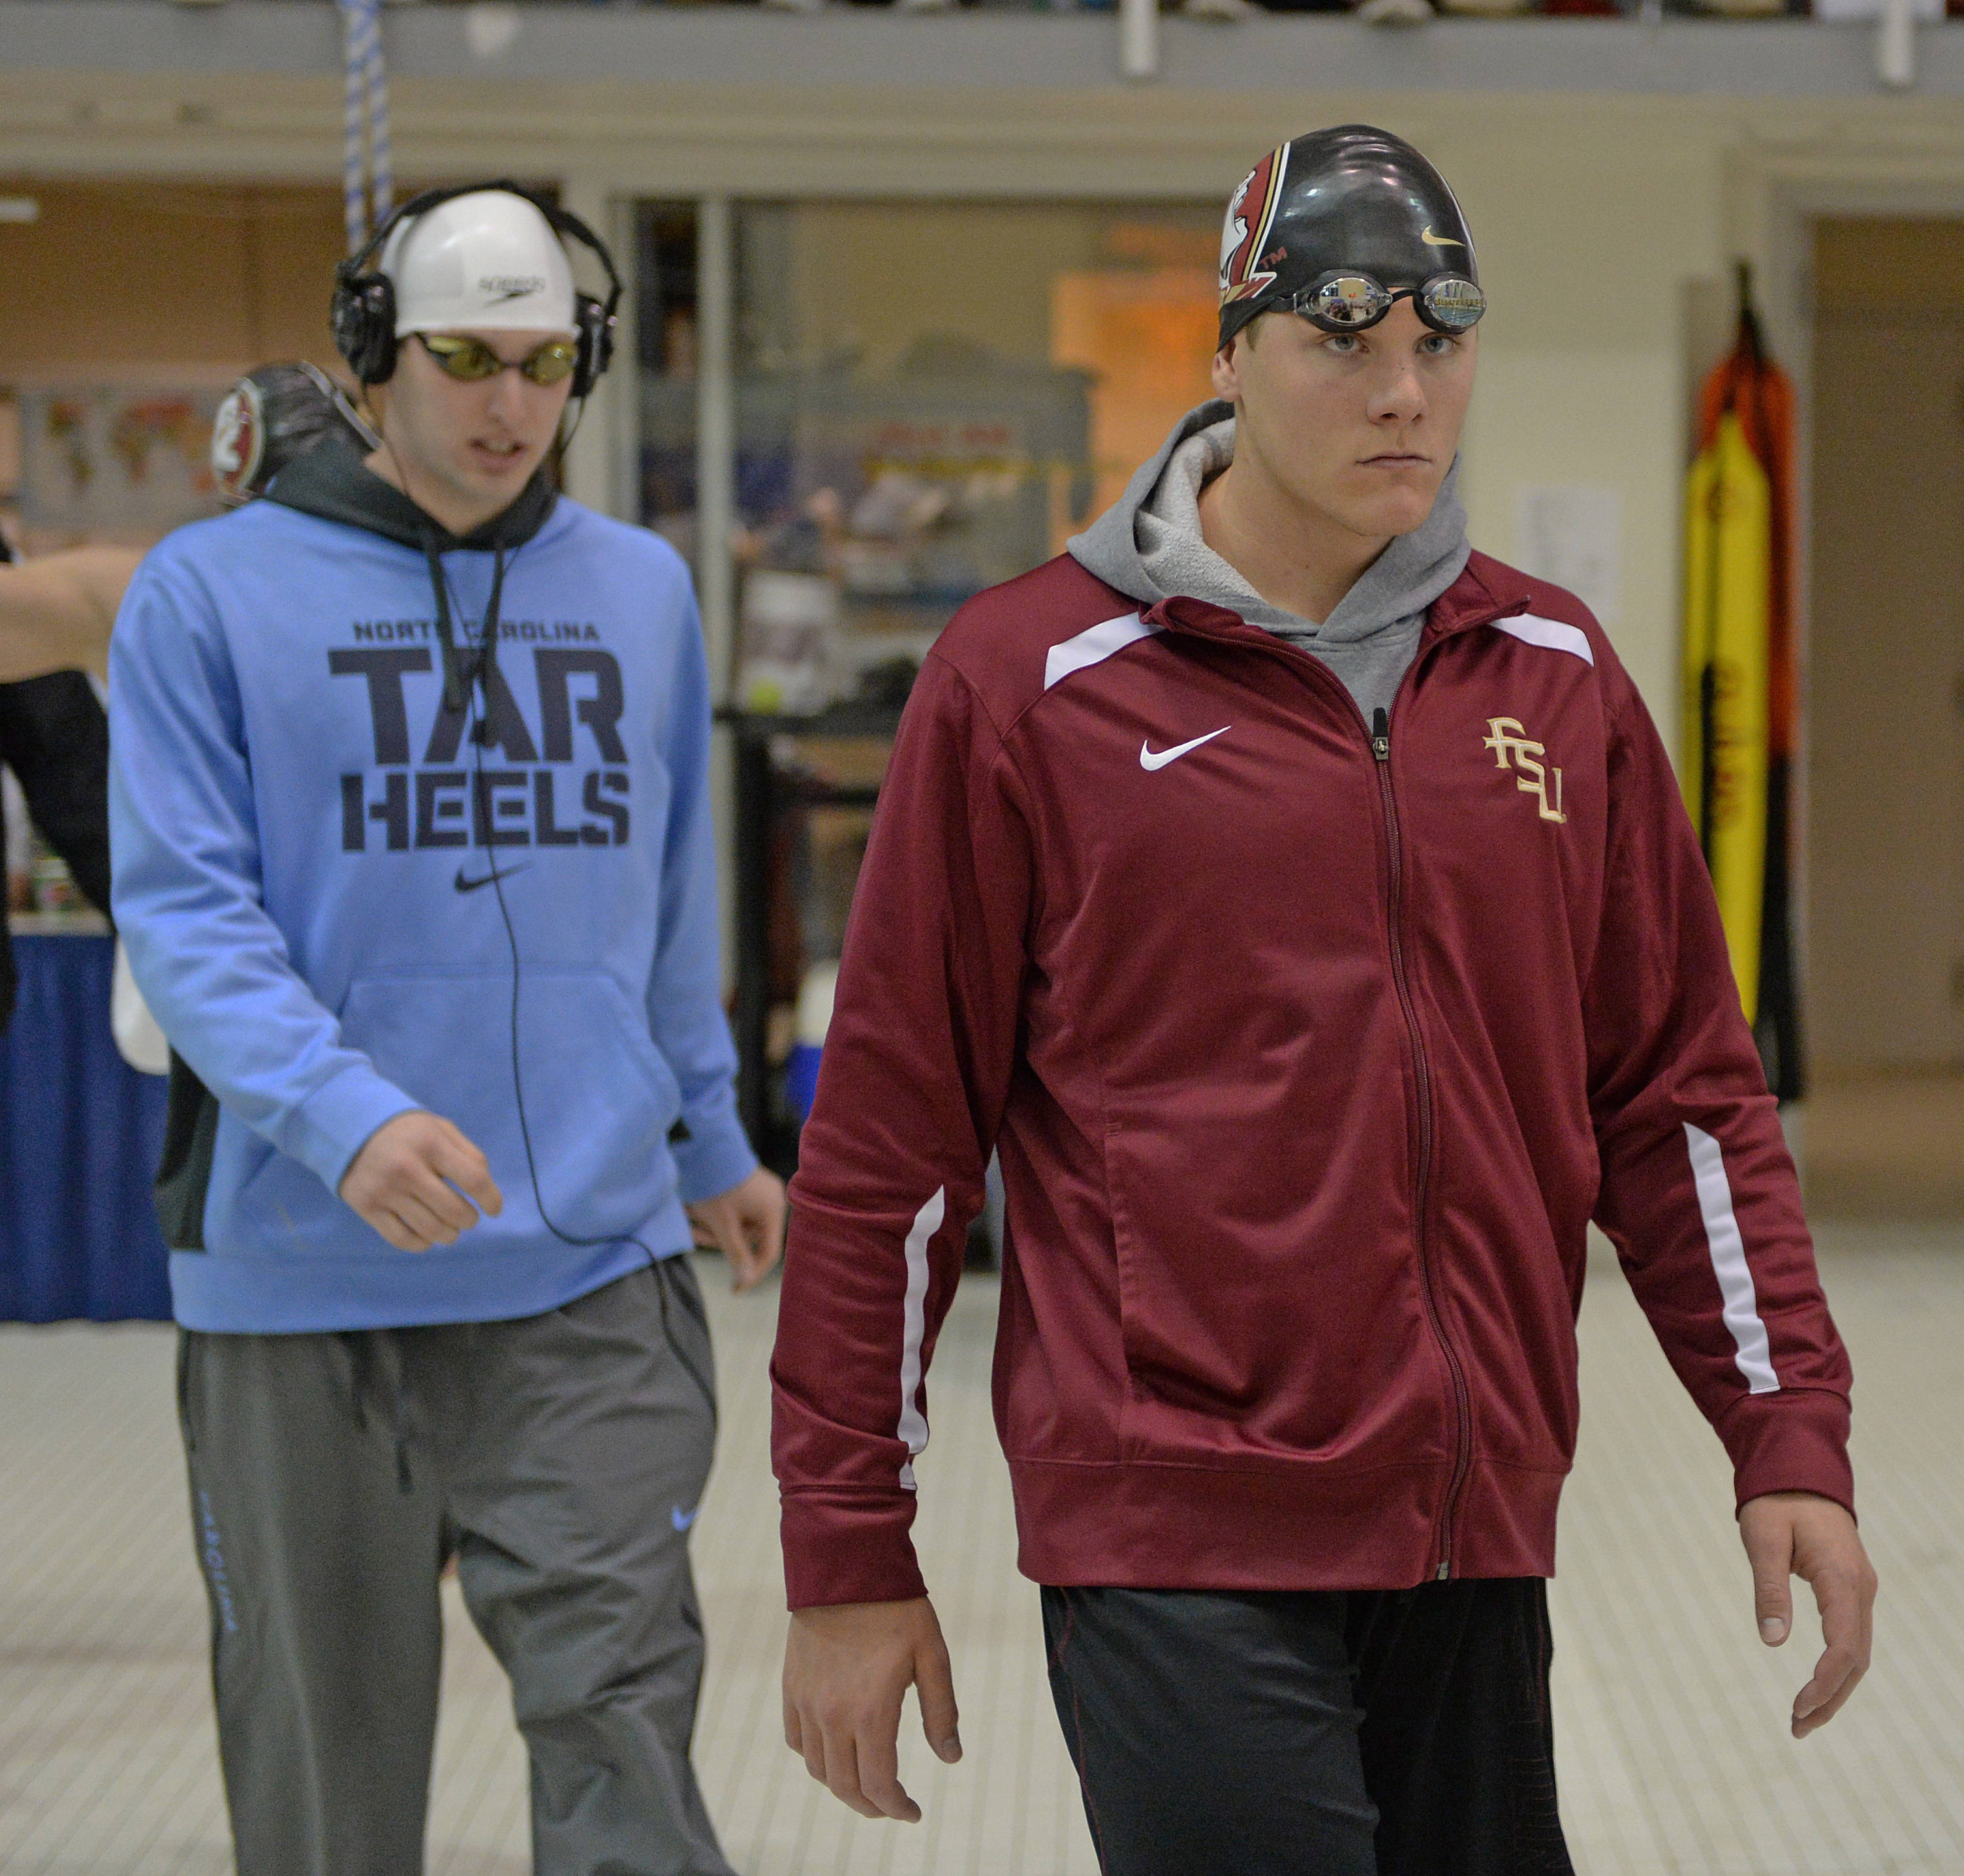 Connor Knight heads to the blocks for the 200 fly final - Mitch White